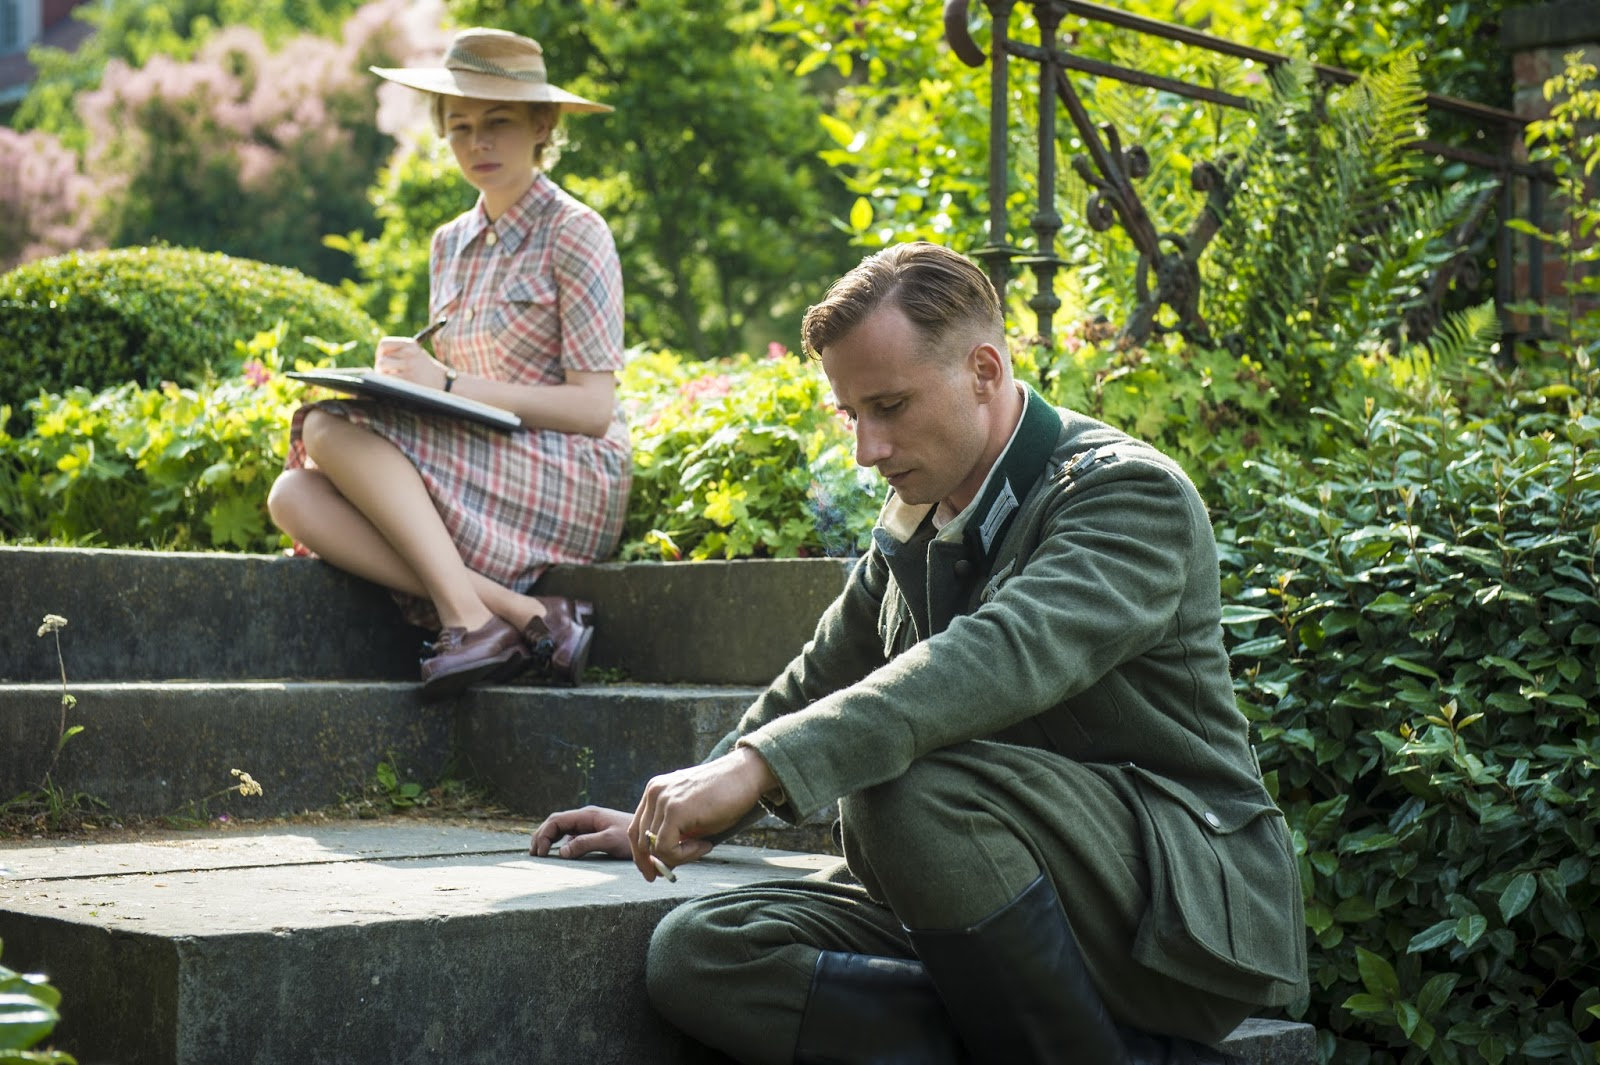 suite française Suite française 2014 tv-ma 1h 47m waiting for news of her prisoner-of-war husband, a french woman in nazi-occupied france reluctantly falls for a german officer quartering in her home.